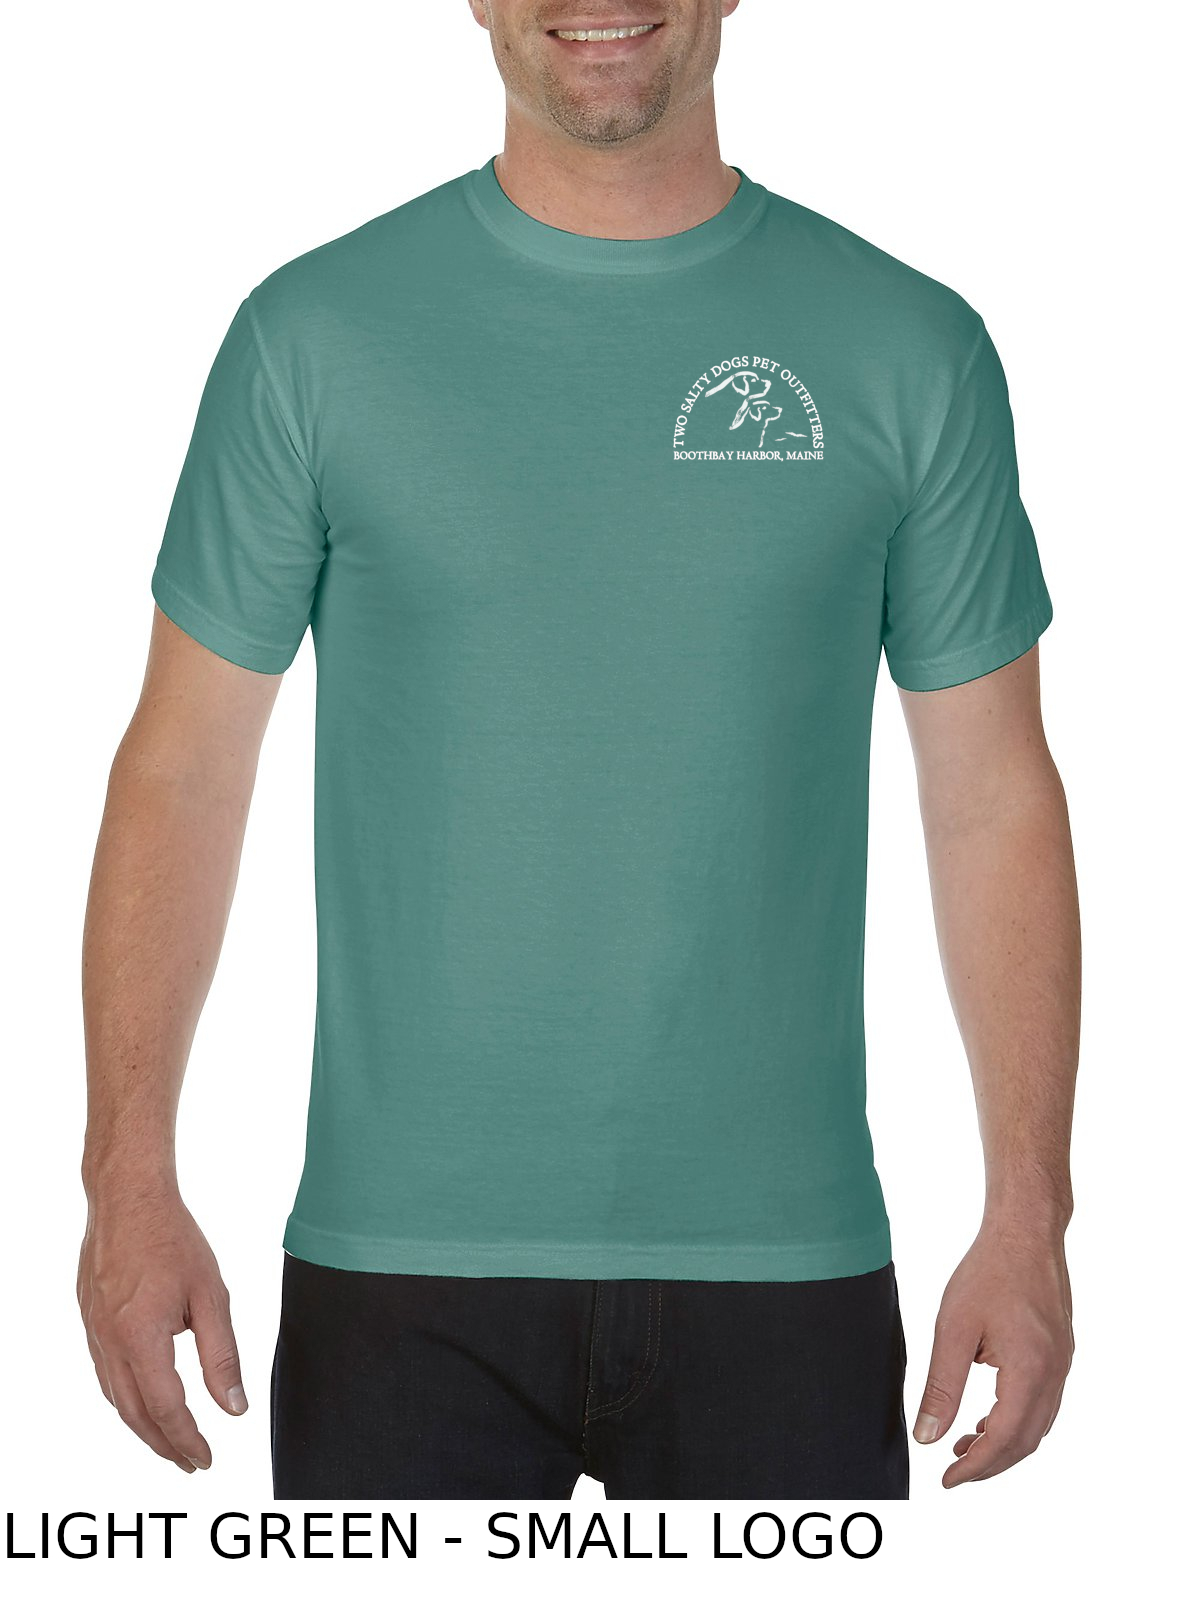 bbha-ss-t-shirt-no-pocket-light-green-front-small-logo